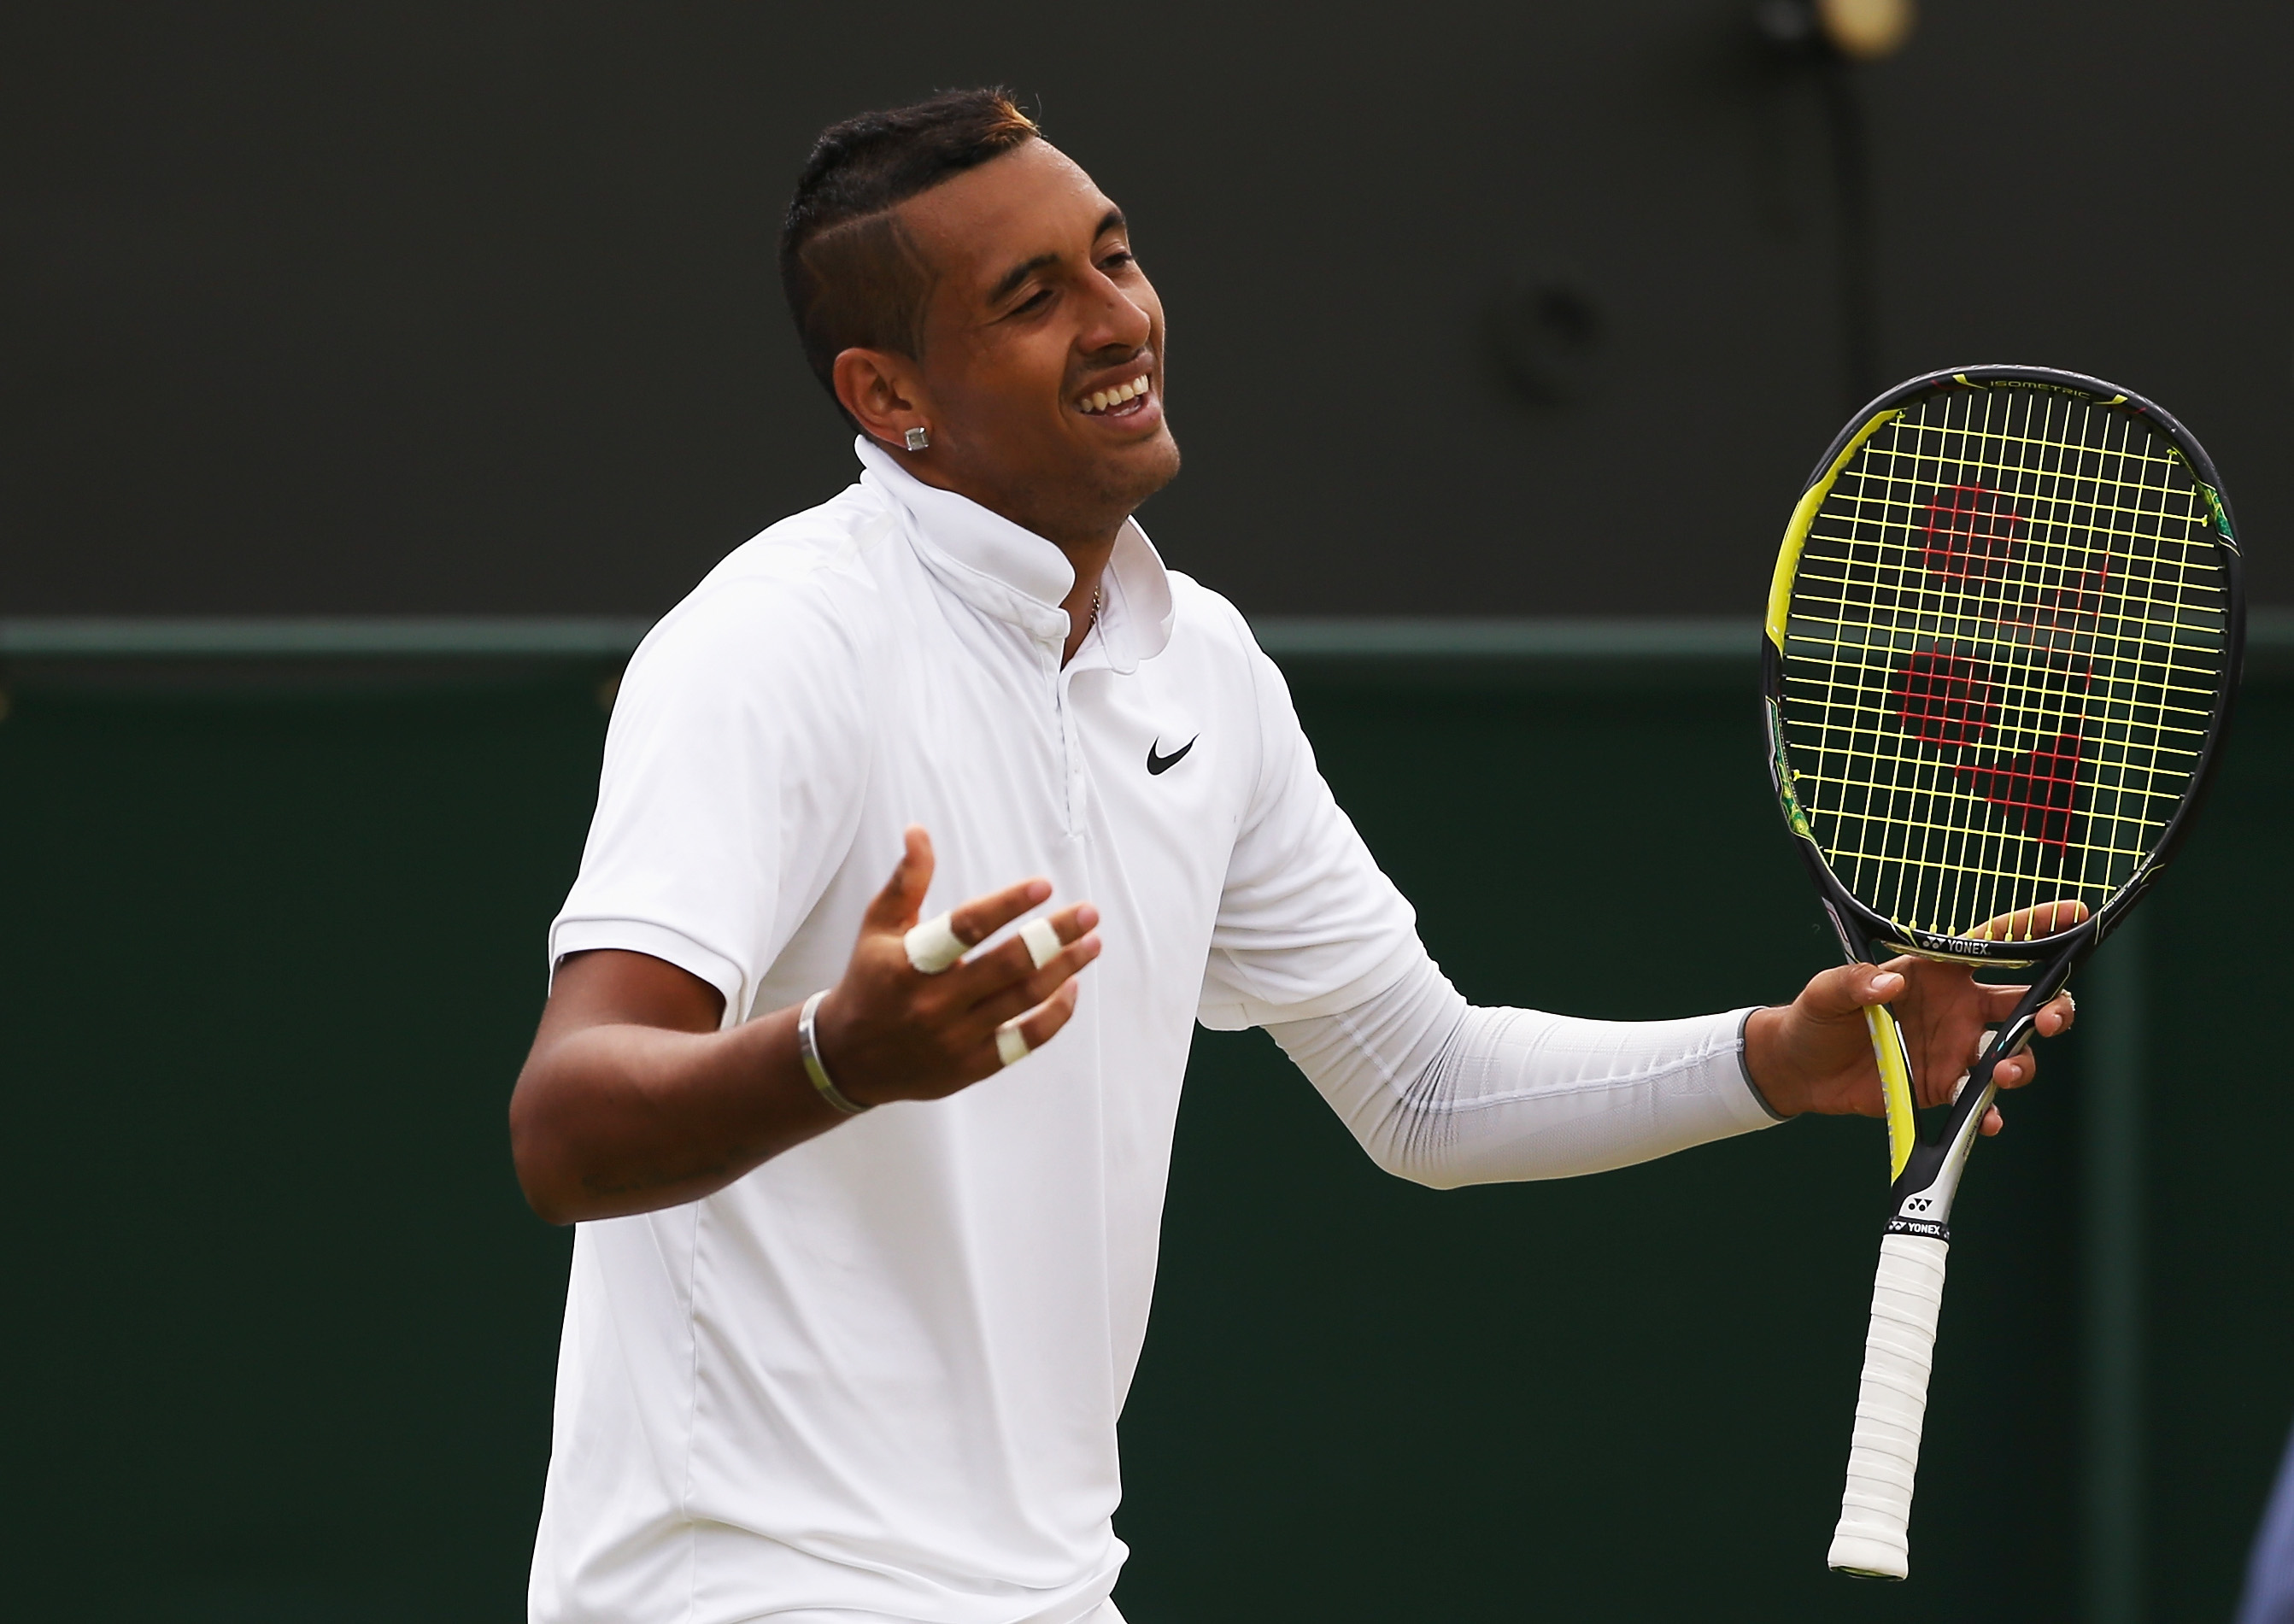 Wimbledon 2015: Nick Kyrgios loses game after refusing to try during Richard Gasquet match